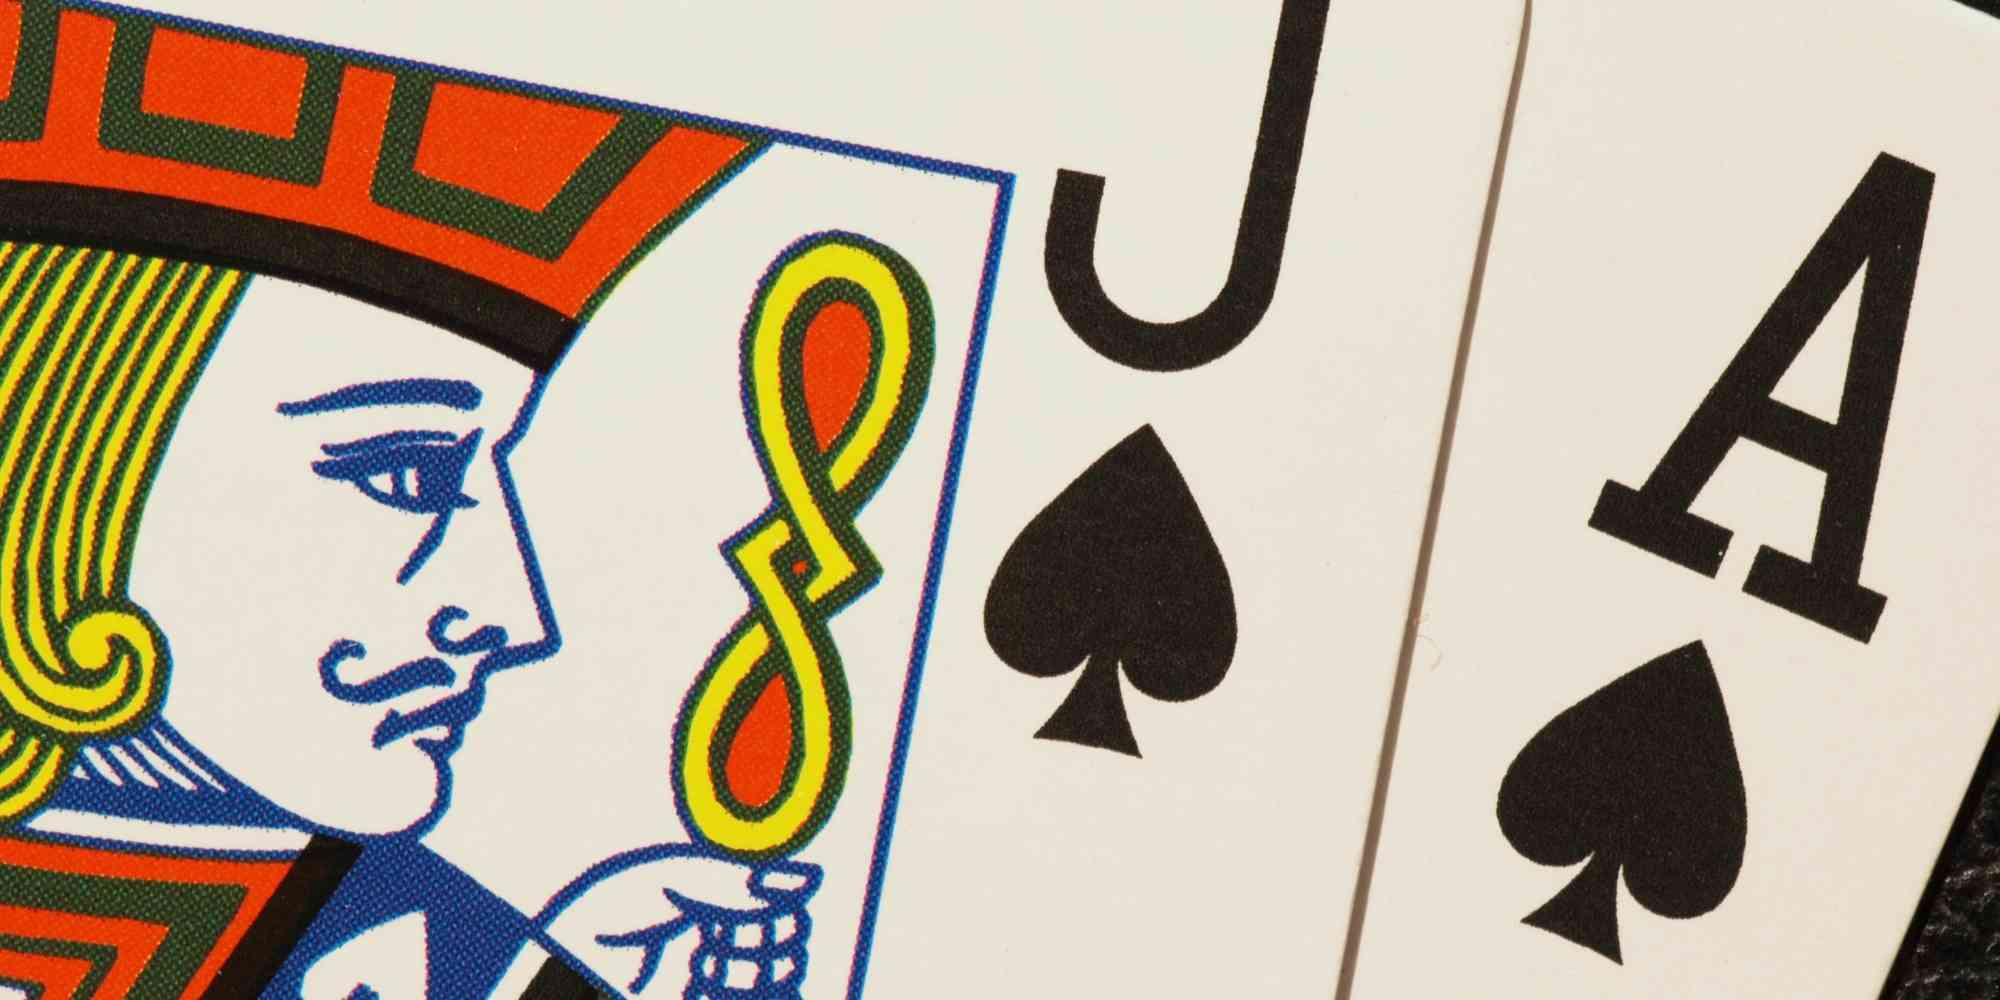 Are blackjack and 21 the same thing?